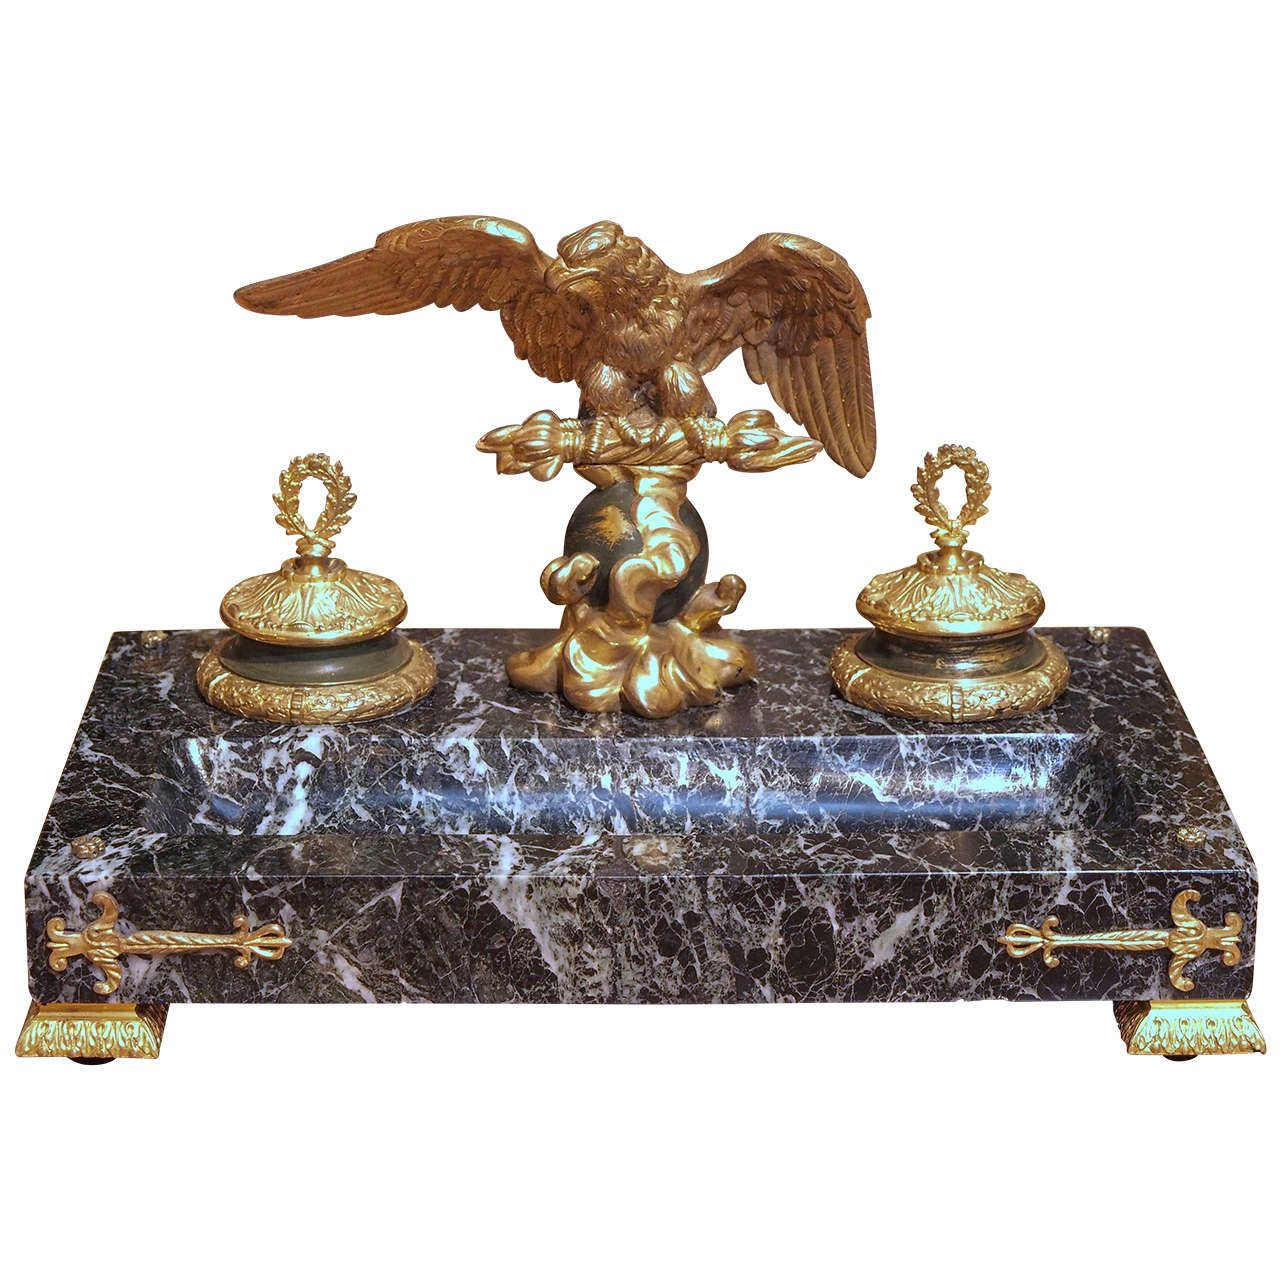 Antique desk accessories For Sale in New Orleans - 1stdibs - Antique Desk Accessories For Sale In New Orleans - 1stdibs